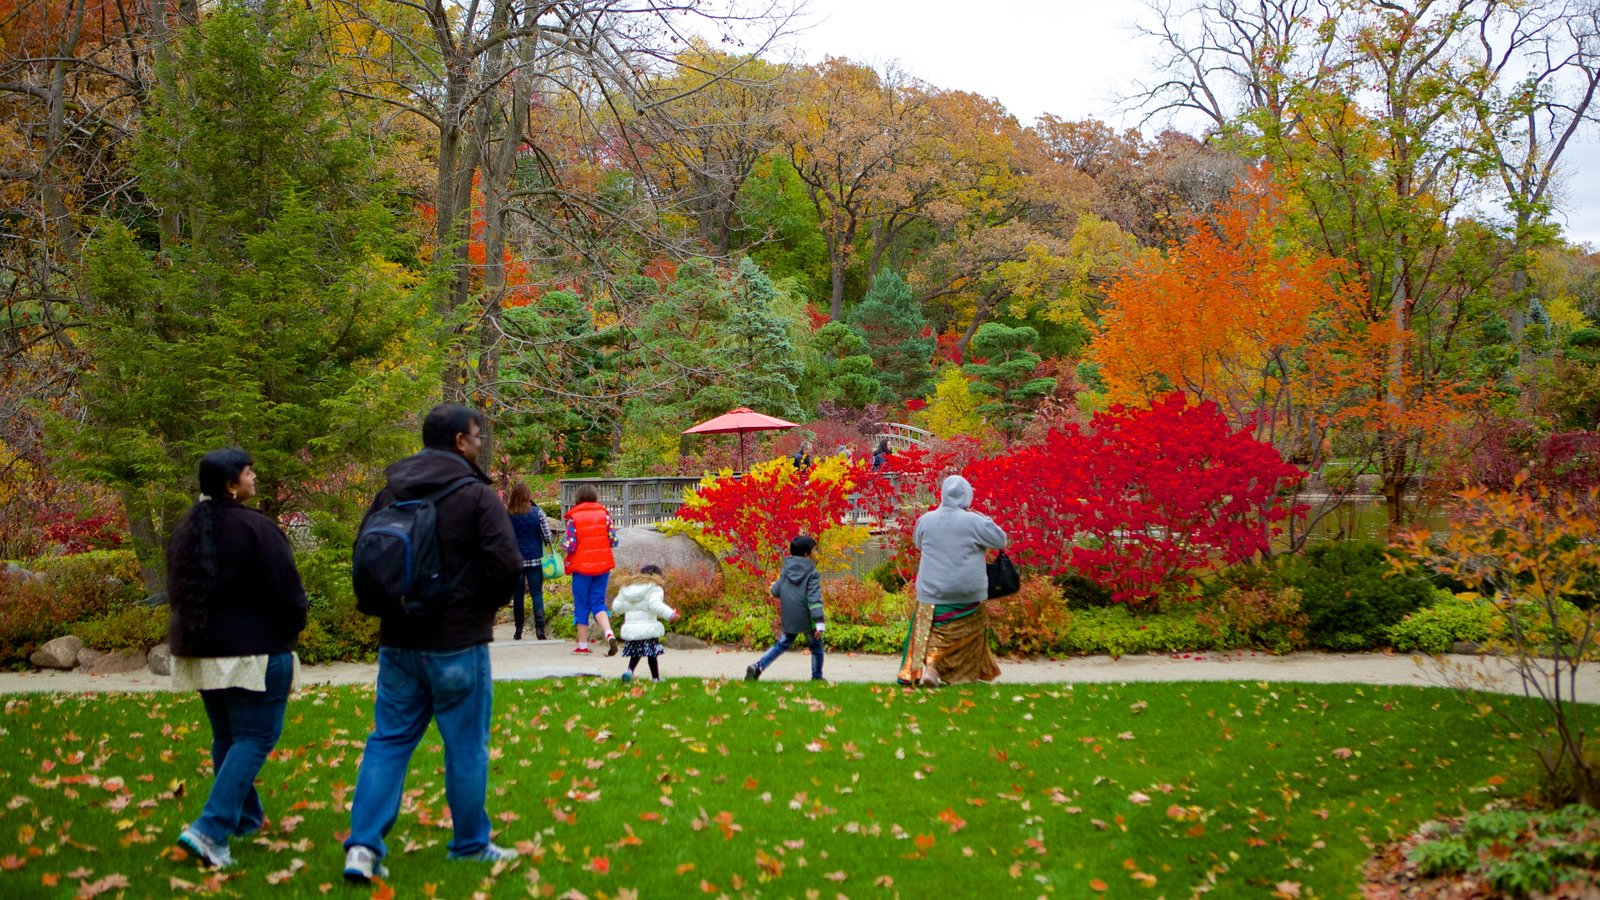 Anderson Japanese Gardens which includes fall colors and a park as well as a small group of people